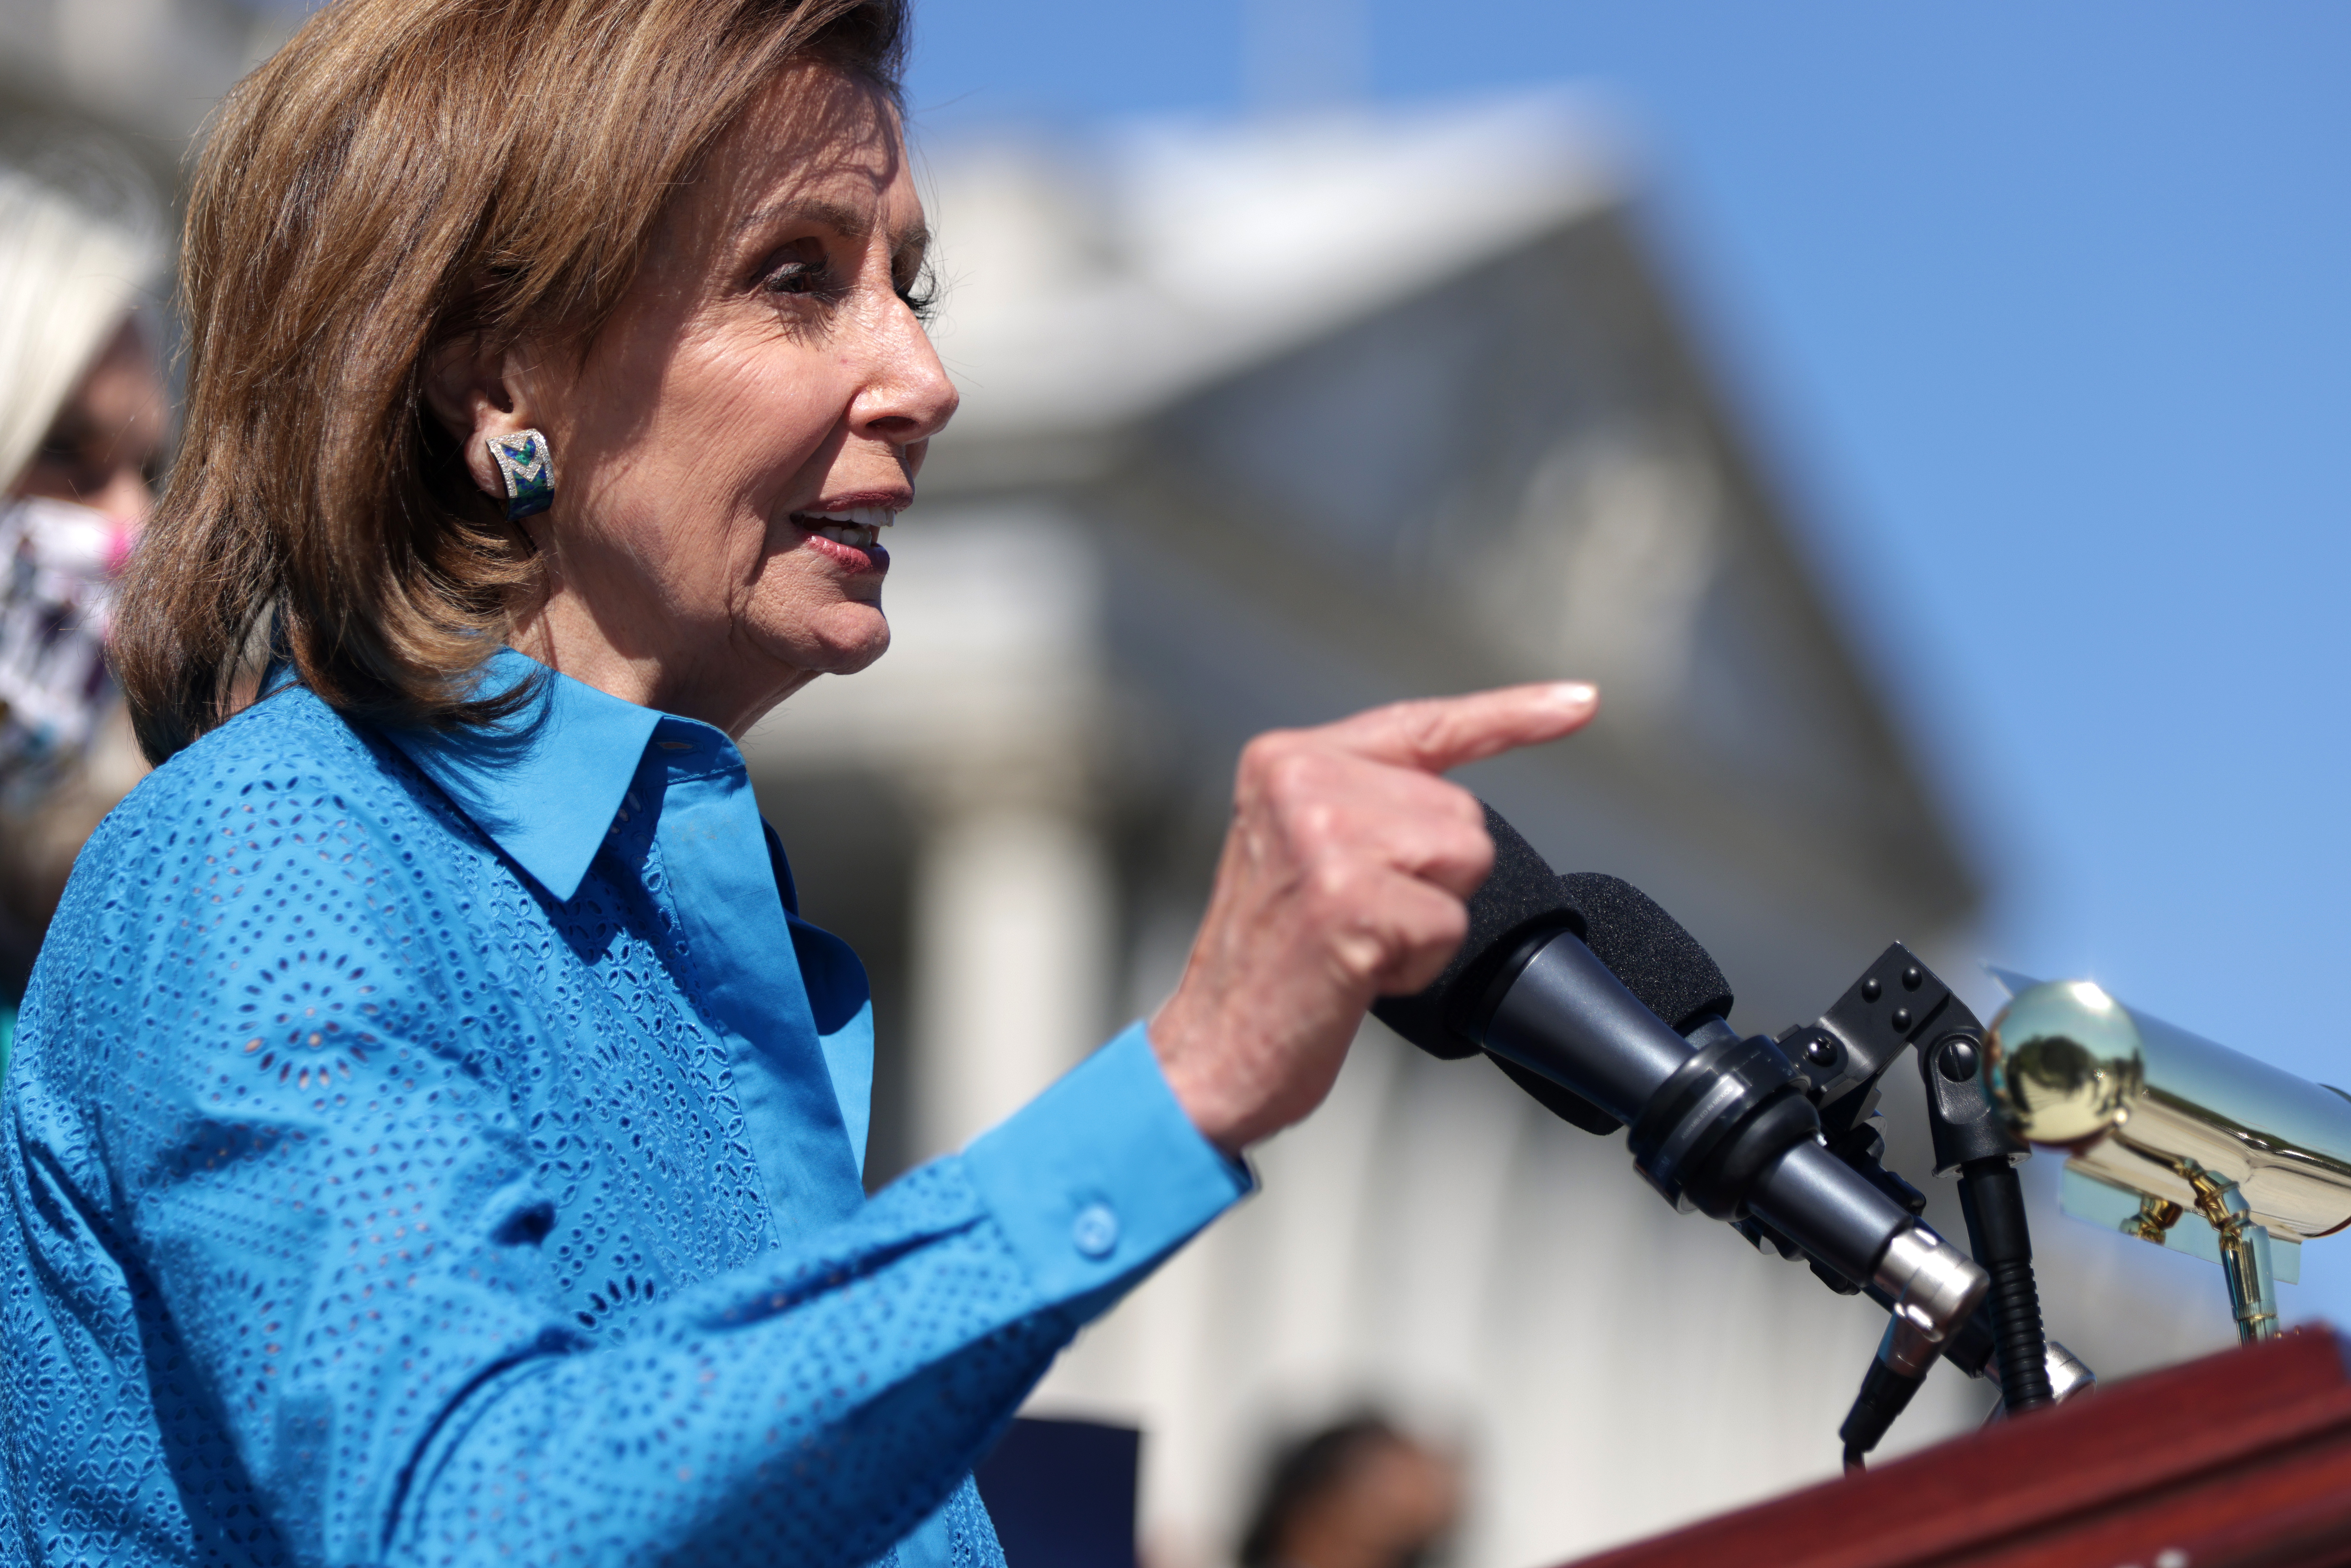 Speaker Nancy Pelosi gestures from behind a podium while speaking outside of the US Capitol.